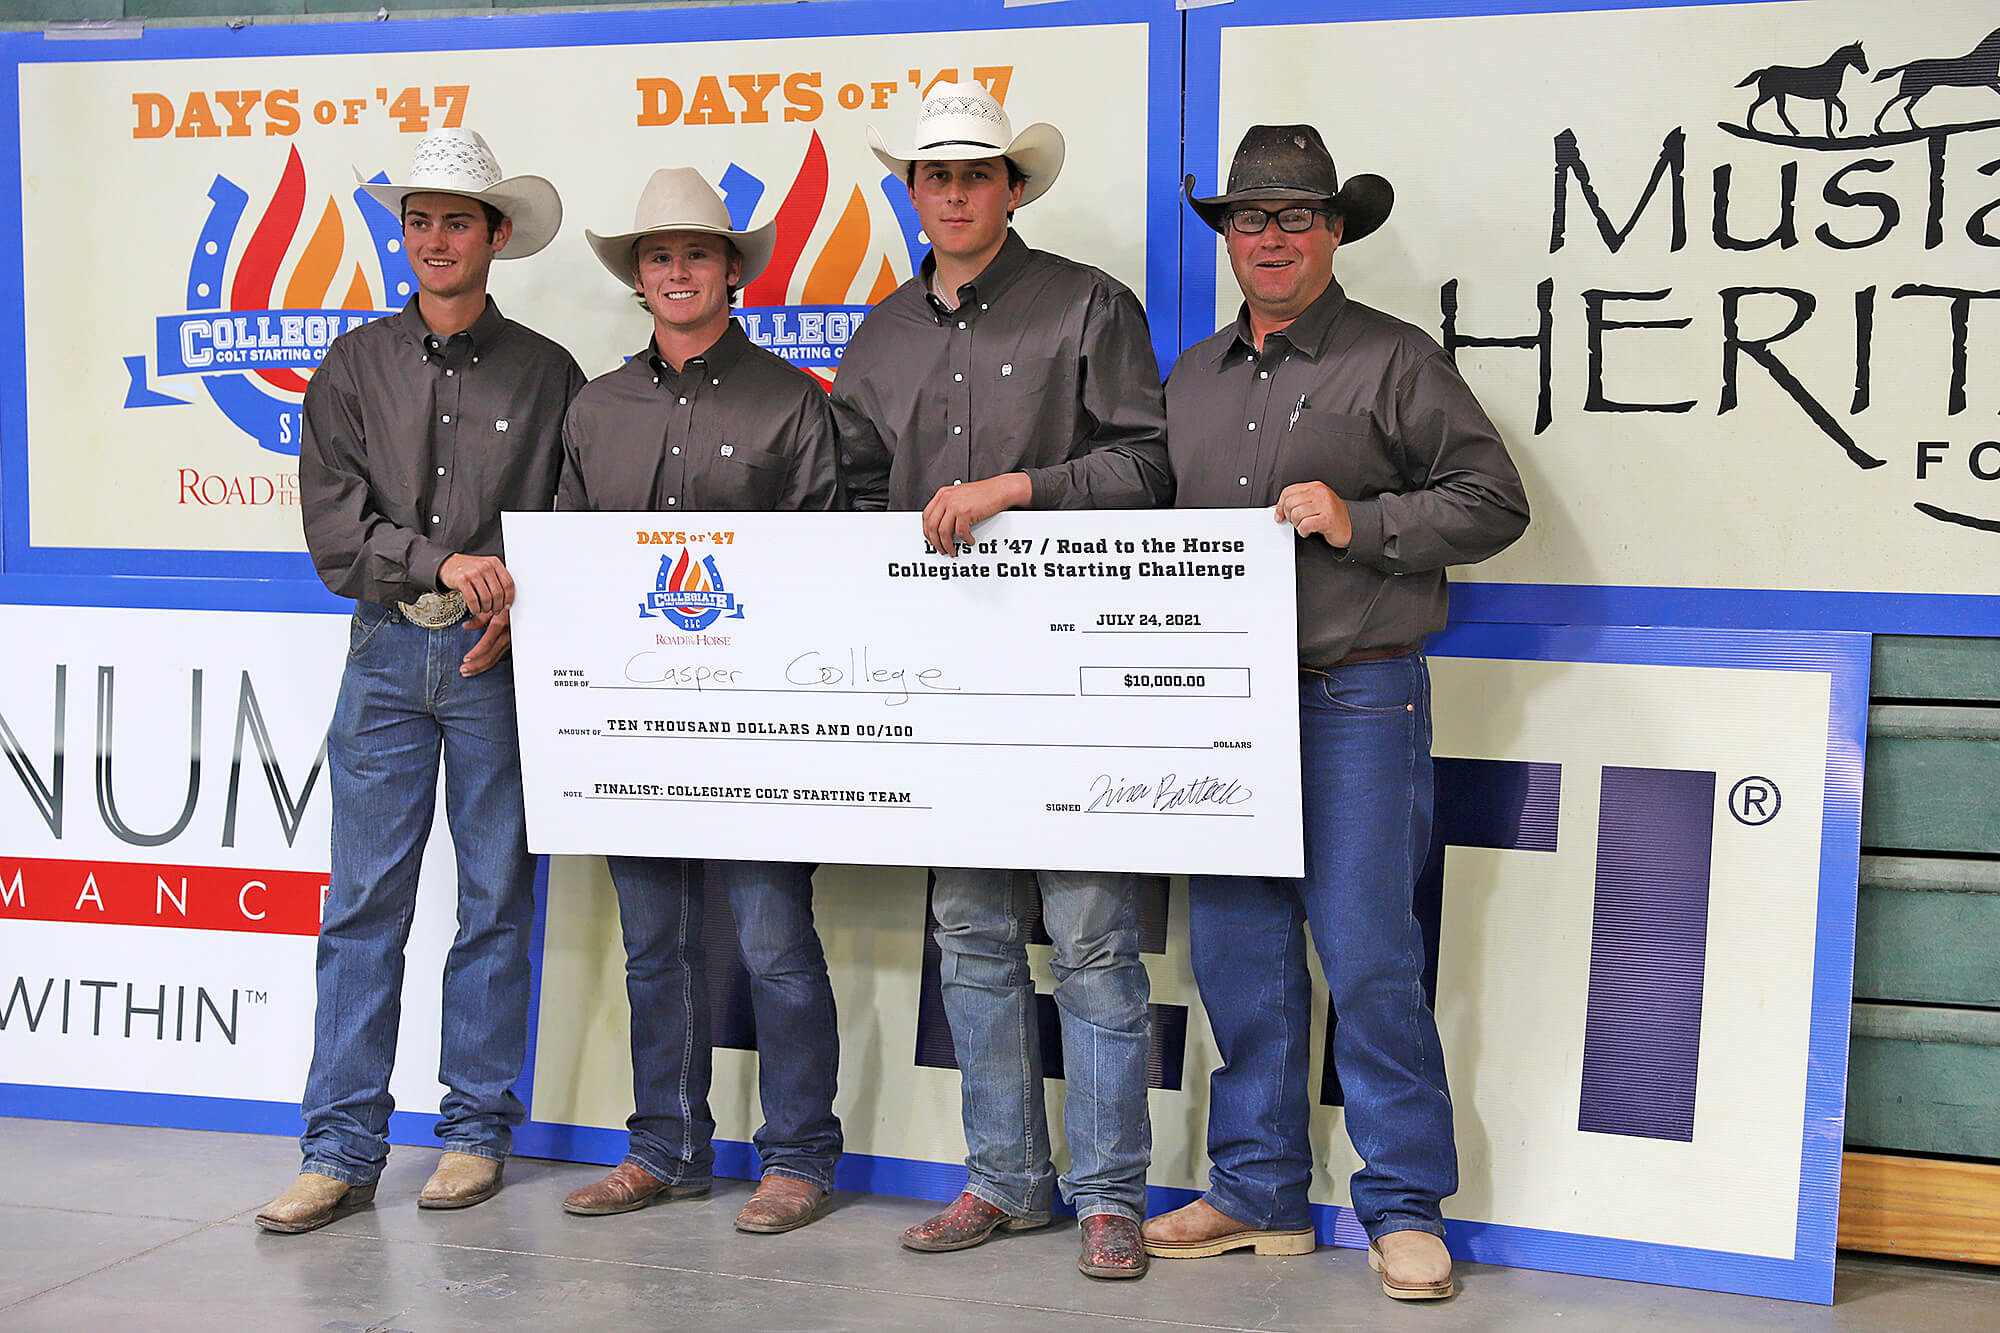 Photo of Road to the Horse CC contestants